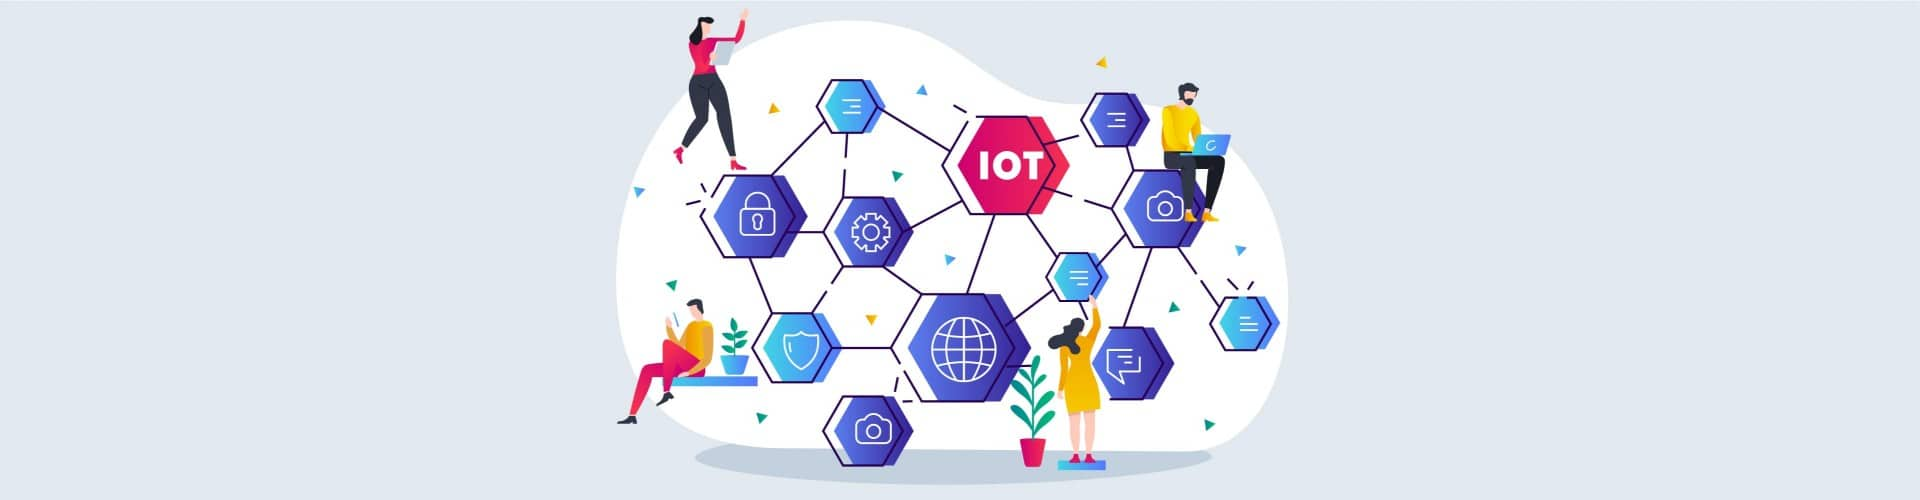 Boost your Fintech business with Iot & Wearable technologies